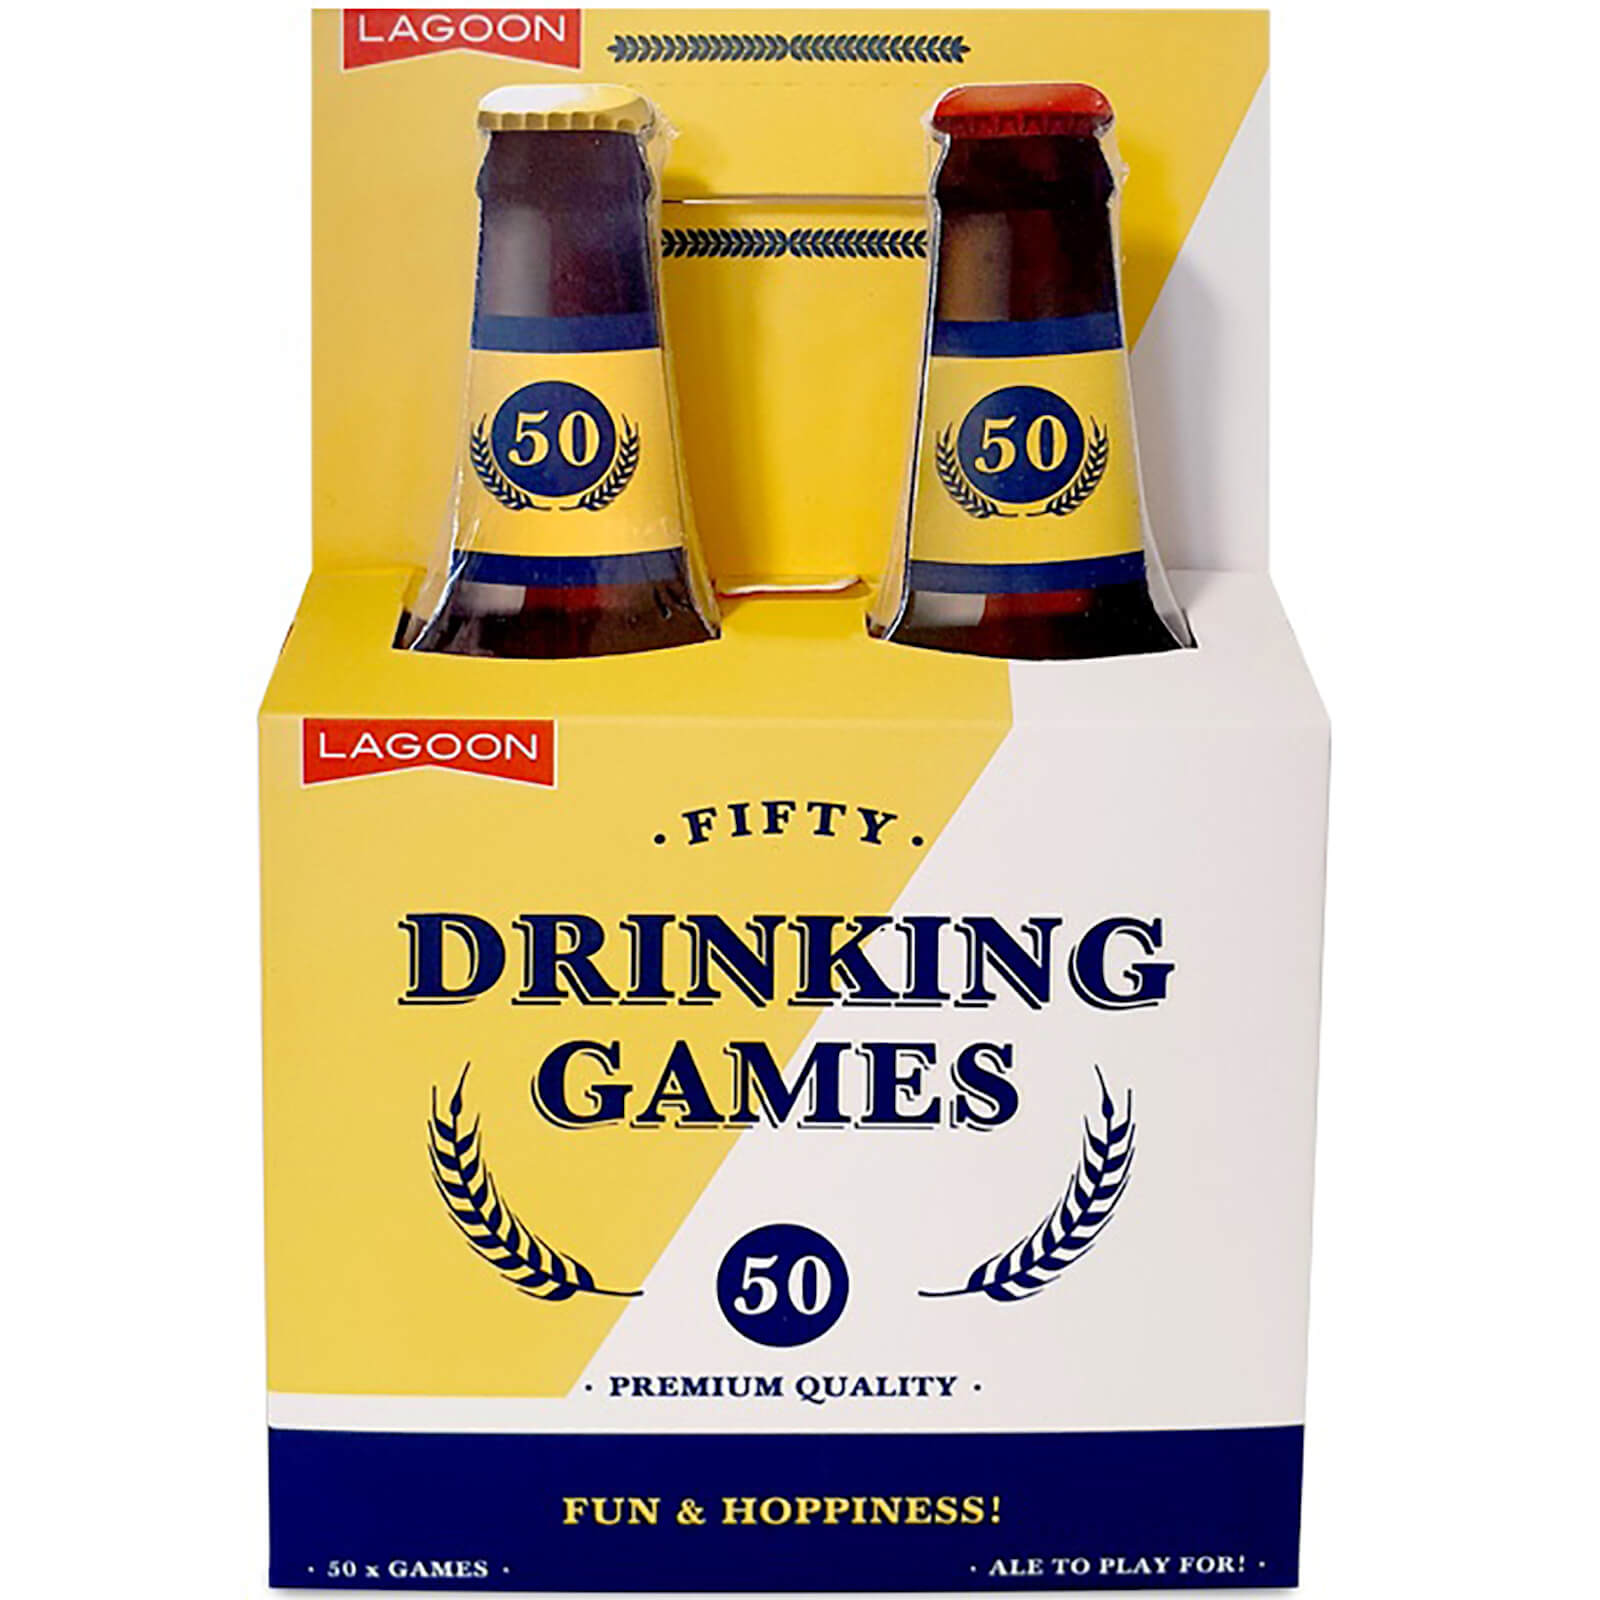 Image of Fifty Drinking Games